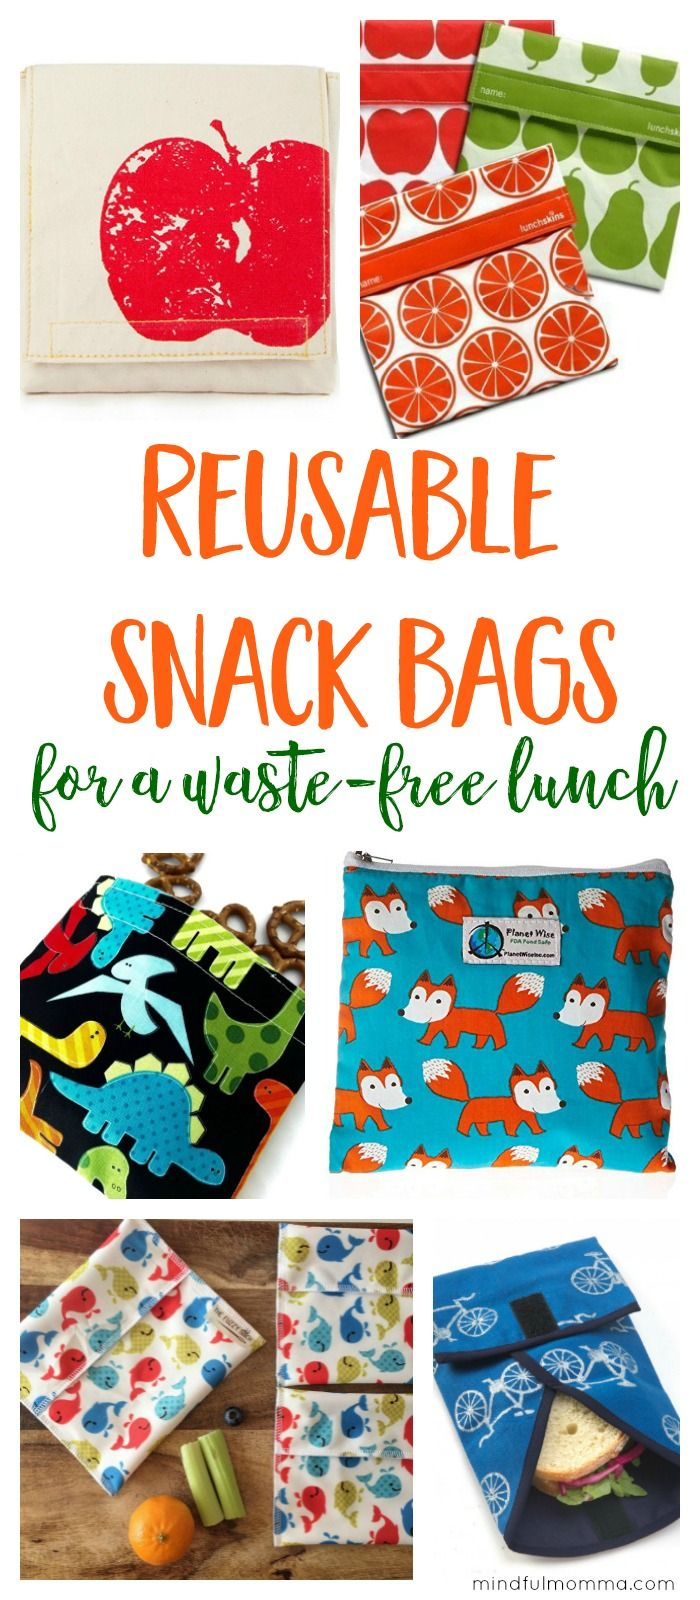 Roundup Of Reusable Snack Bags That Are Perfect For Back To School Lunches